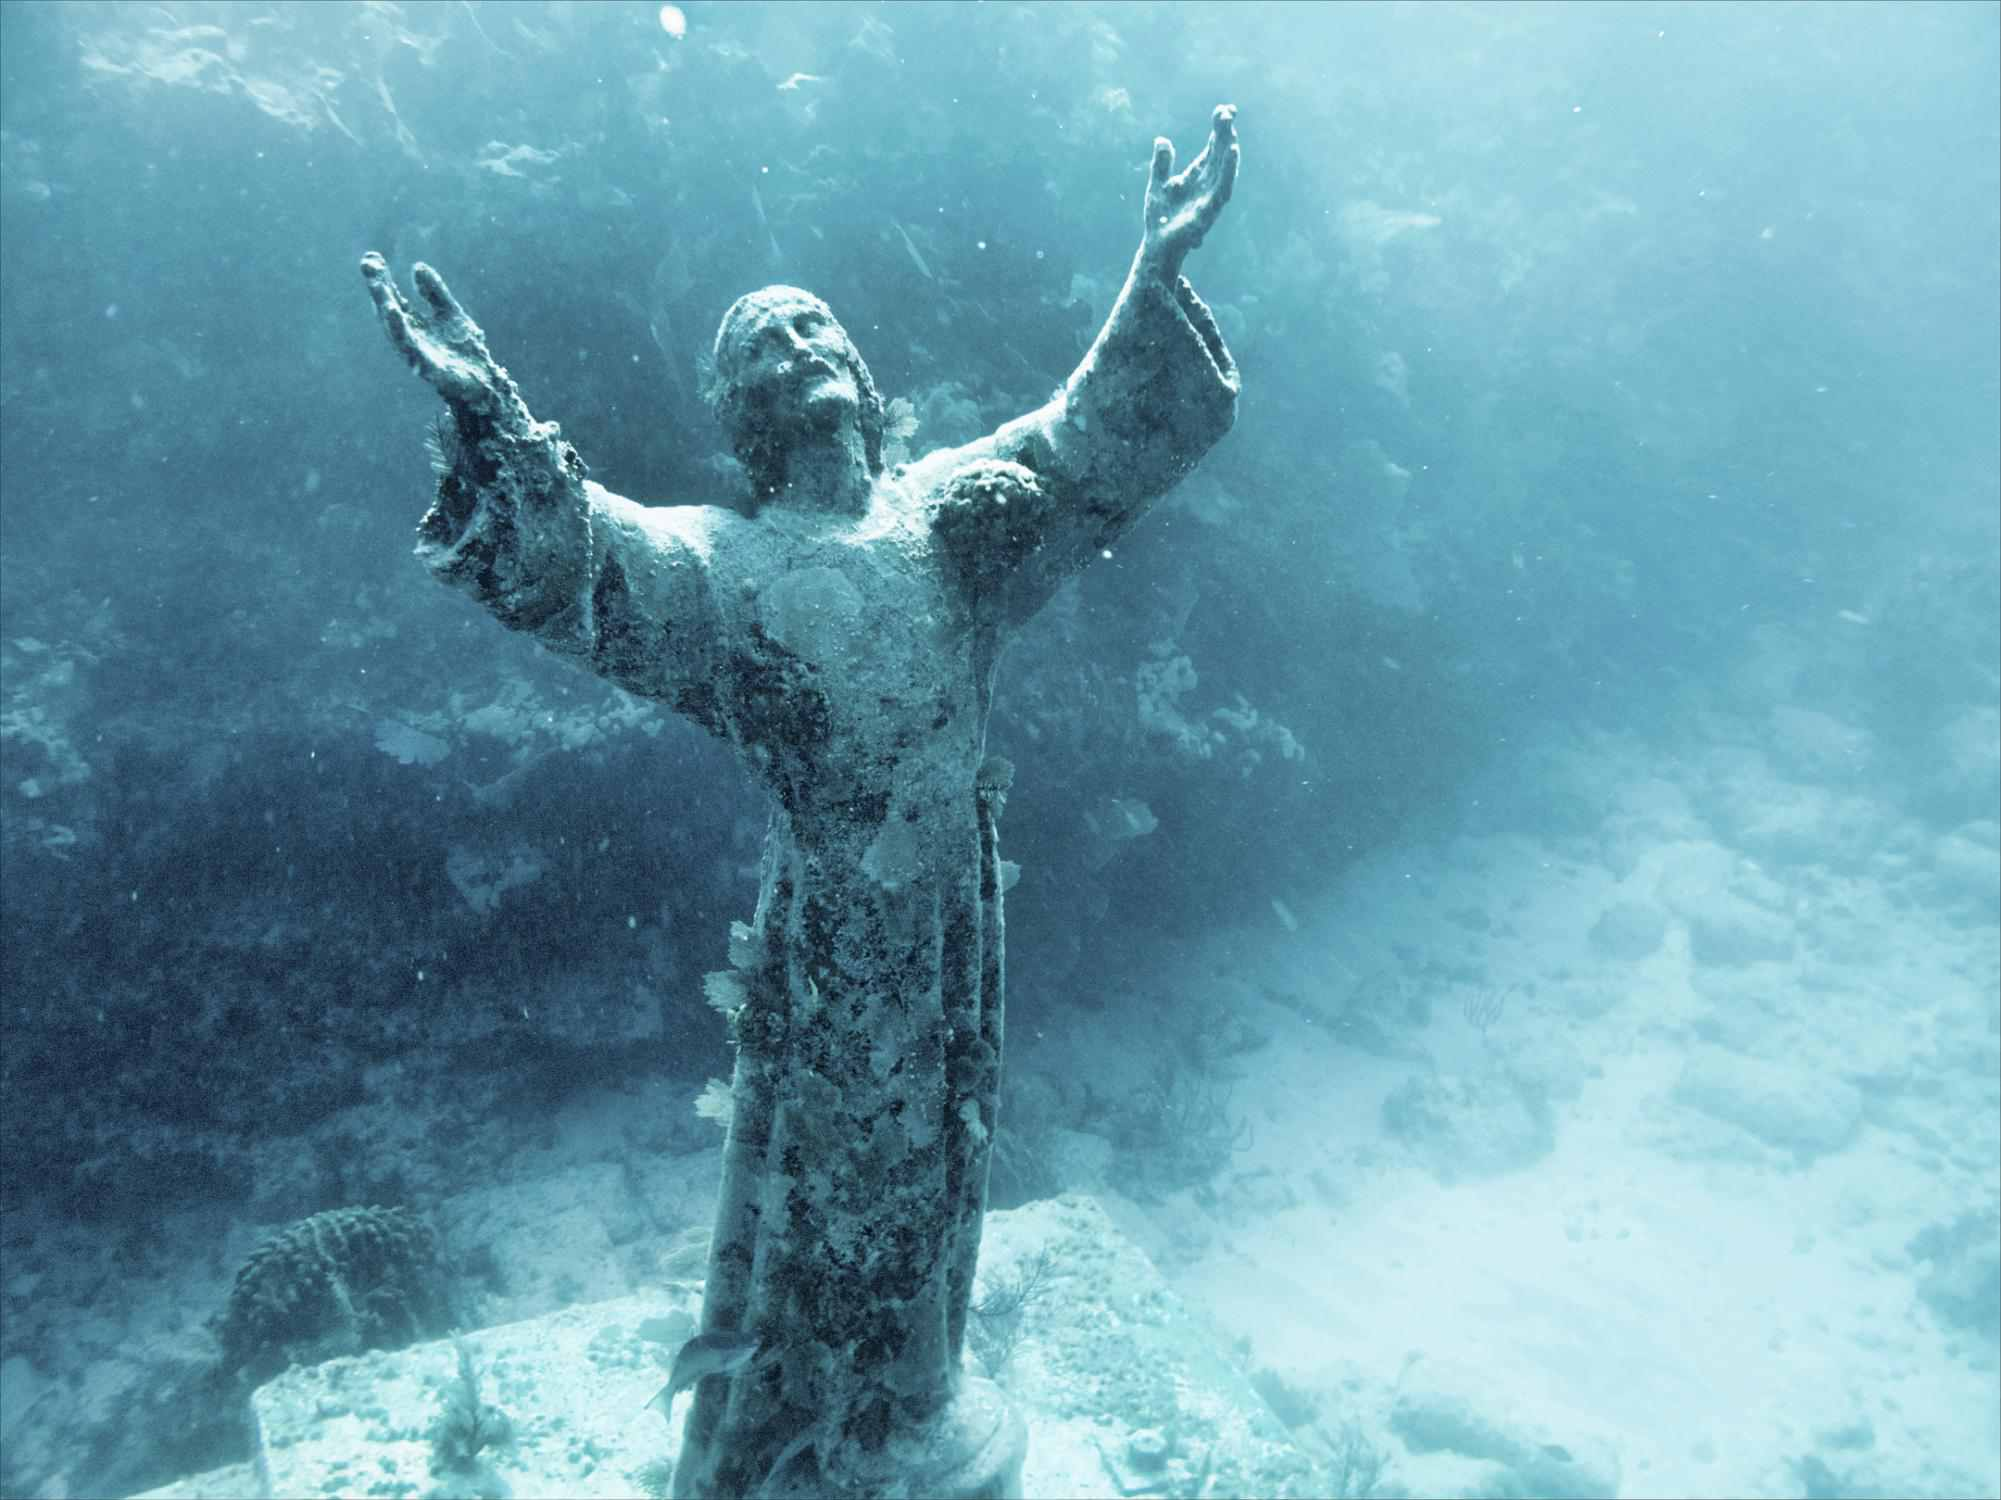 Underwater Christ On Ocean Floor Reaching With Arms Lifted To The Heavens At John Pennekamp